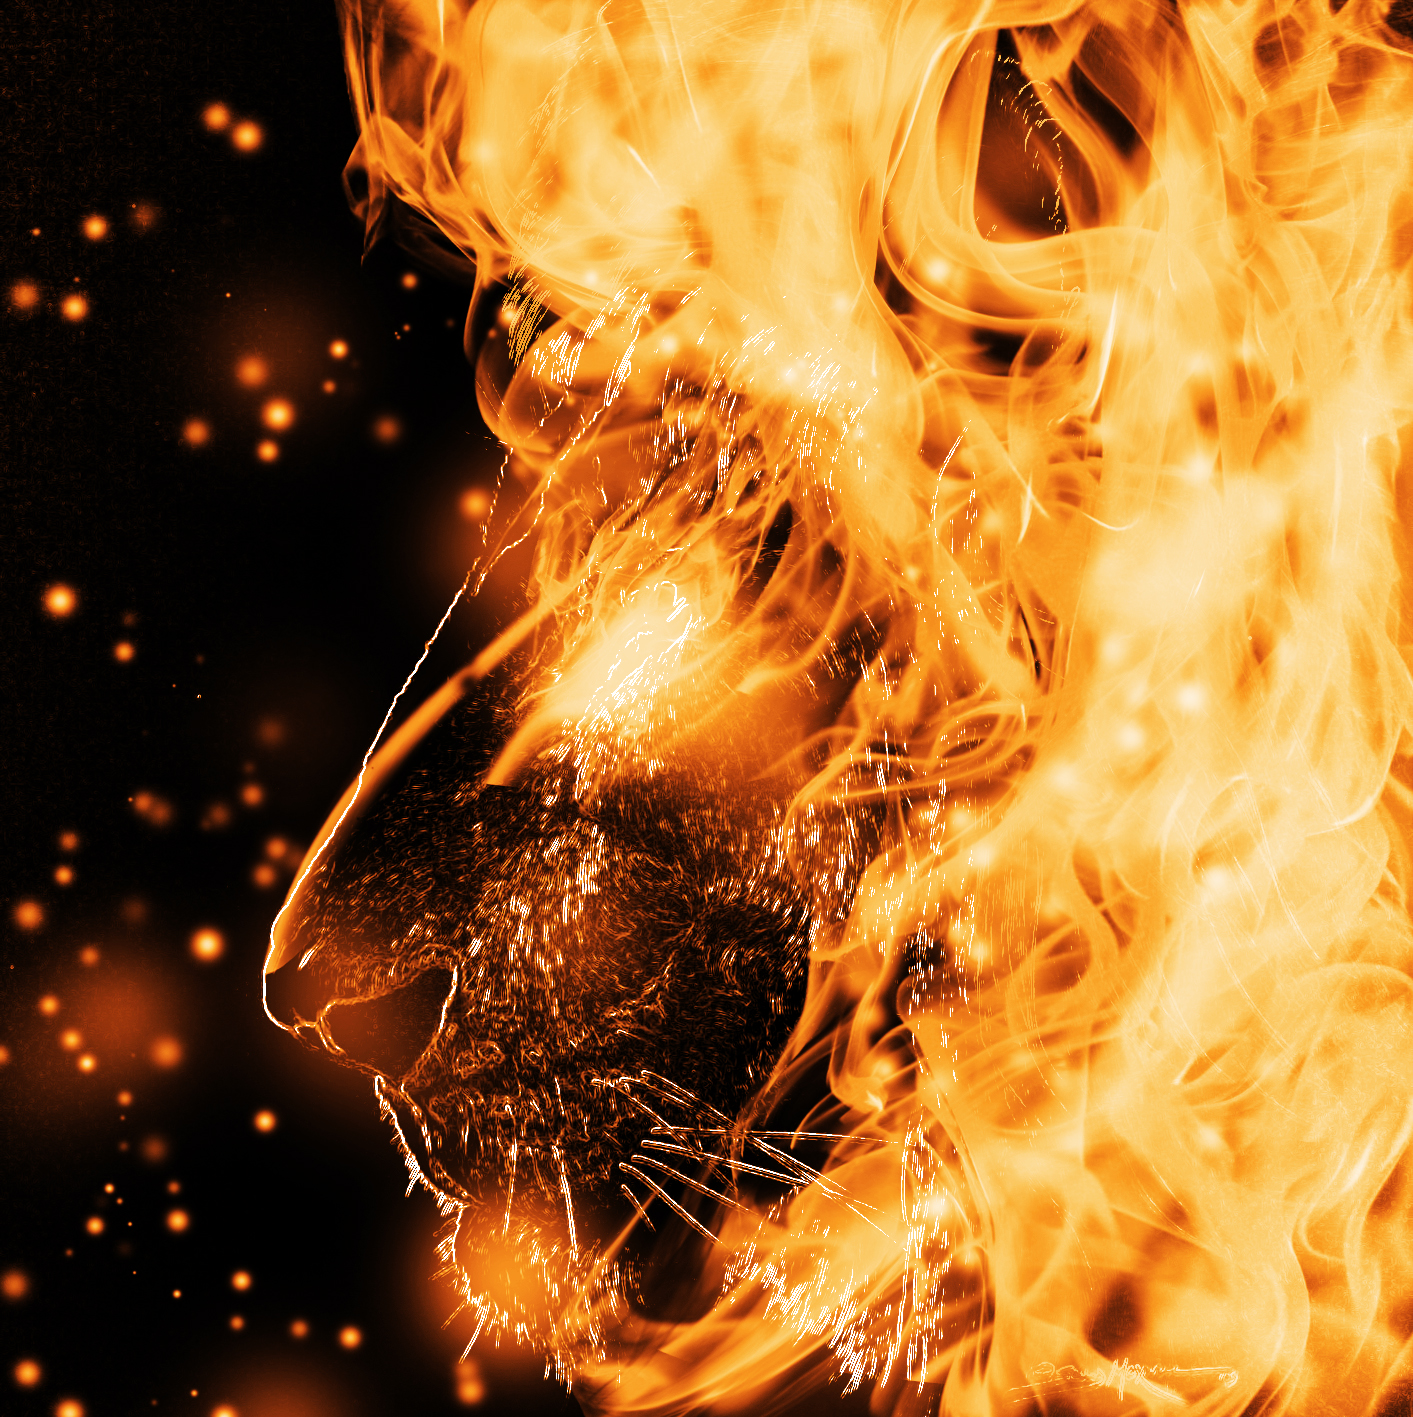 Download Fire Lion Wallpaper Gallery